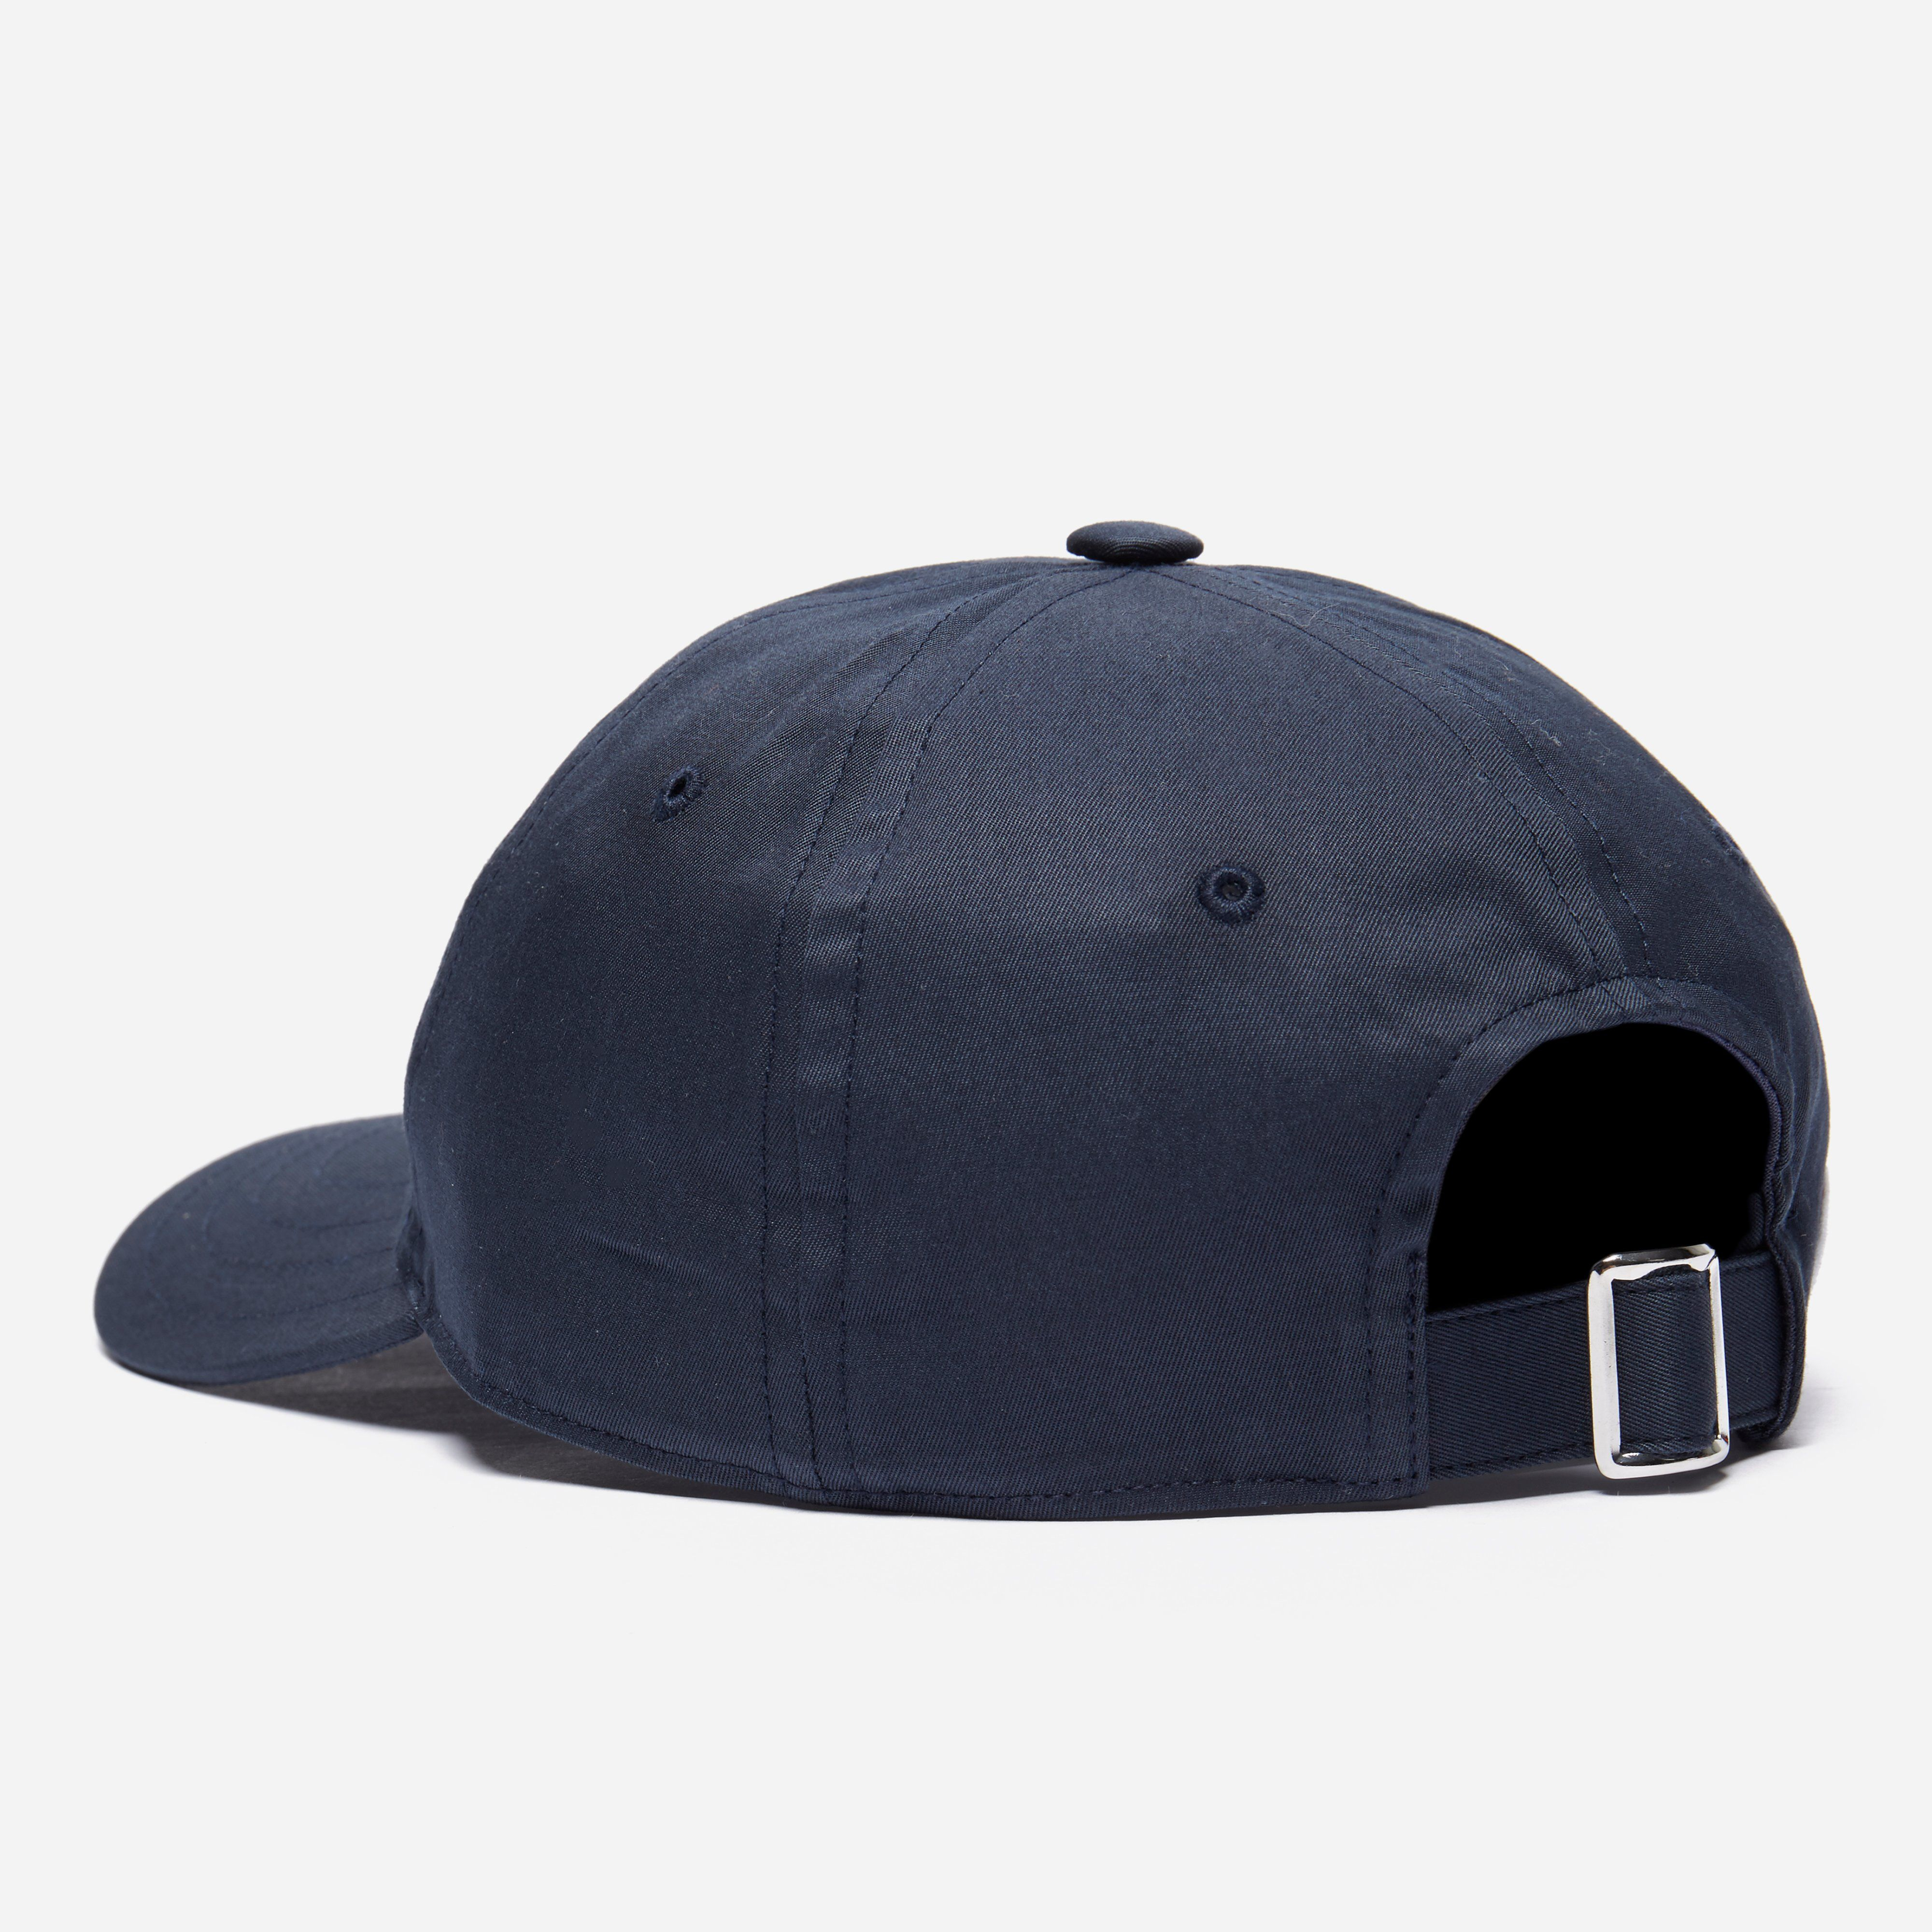 Champion x BEAMS Baseball Cap